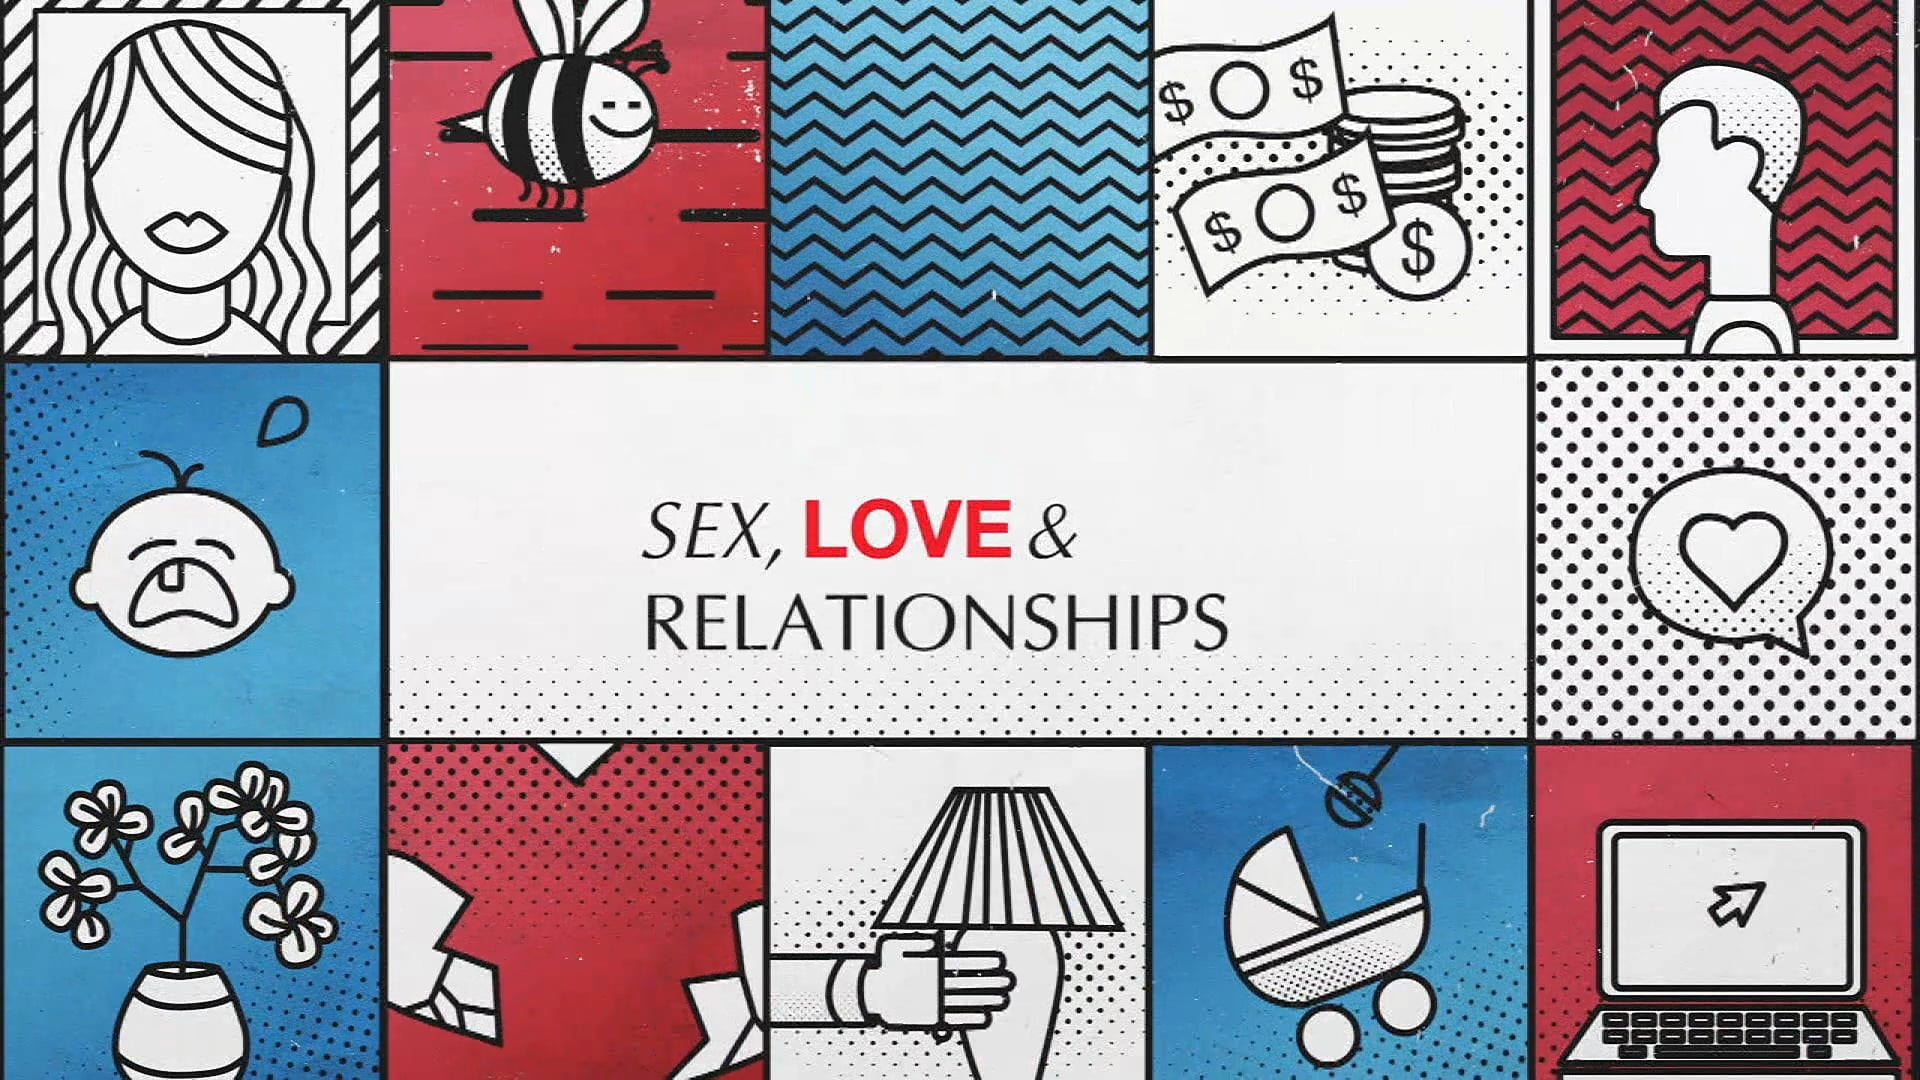 Watch Sex, Love & Relationships